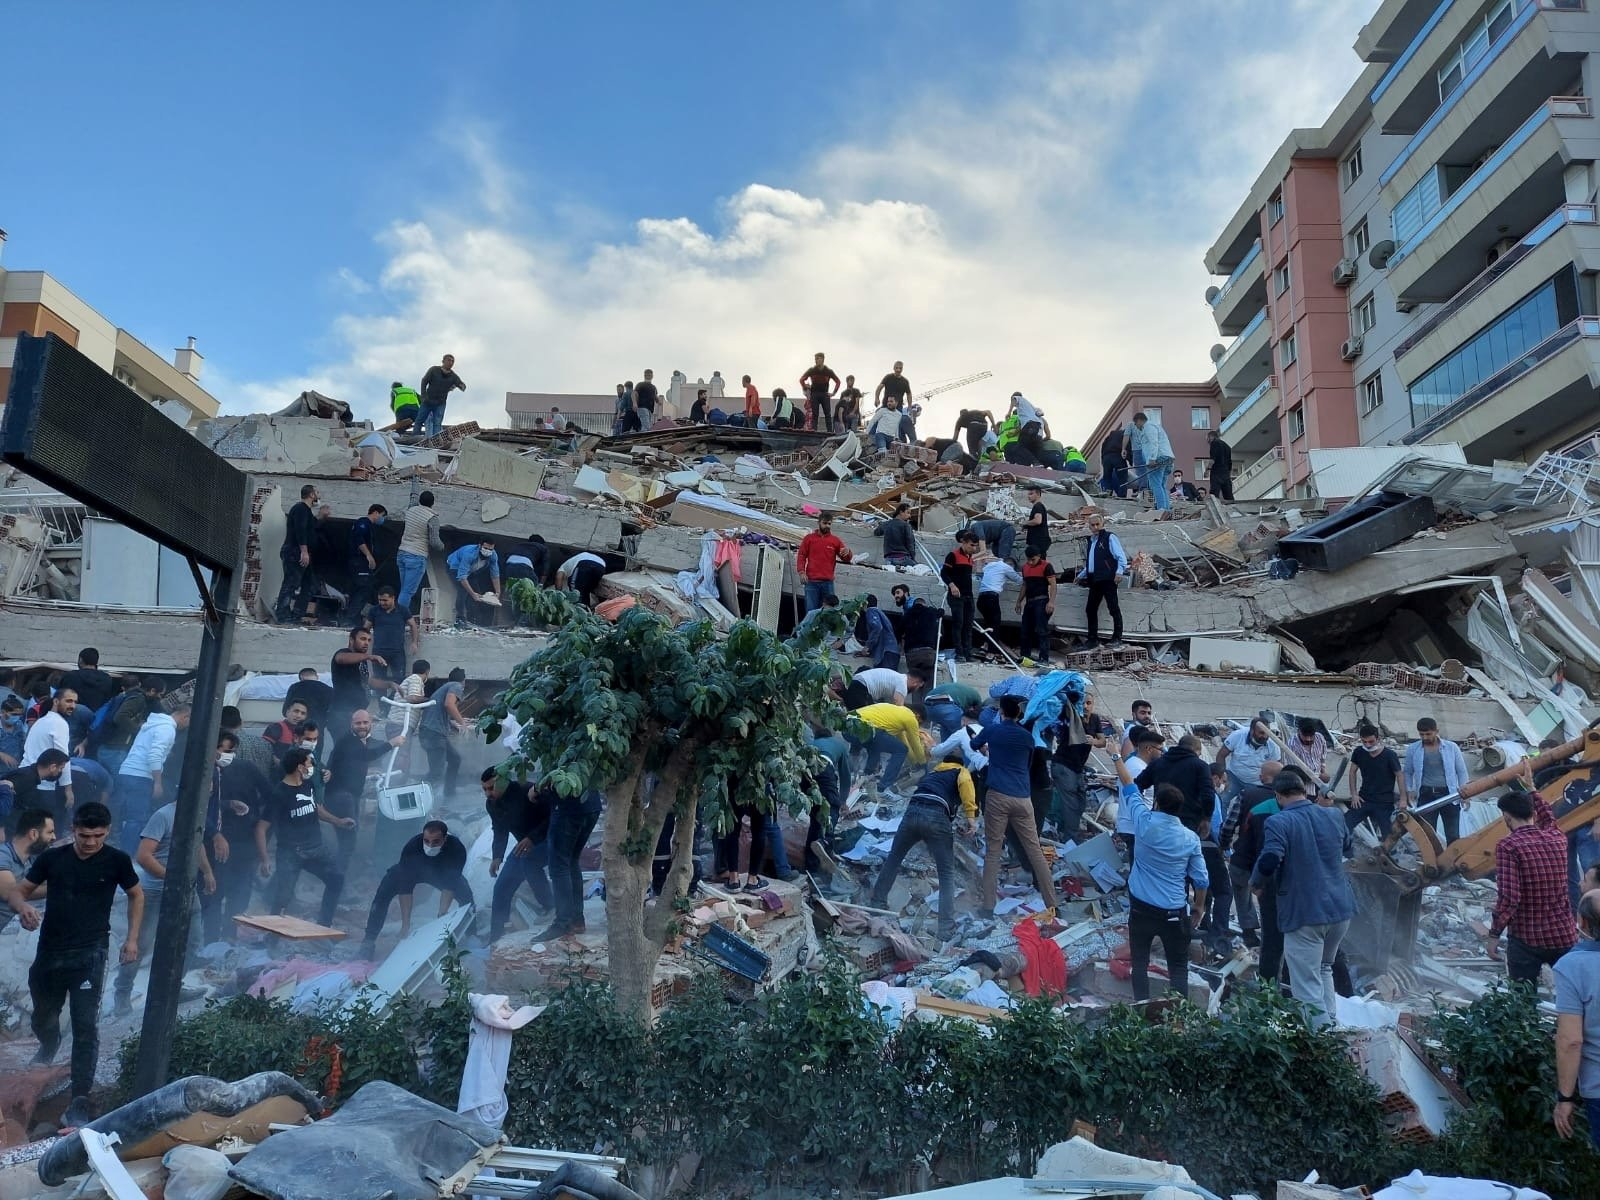 Locals and officials search for survivors in a collapsed building after a strong earthquake struck the Aegean Sea, which was felt in both Greece and Turkey, Izmir, western Turkey, Oct. 30, 2020. (Reuters Photo)